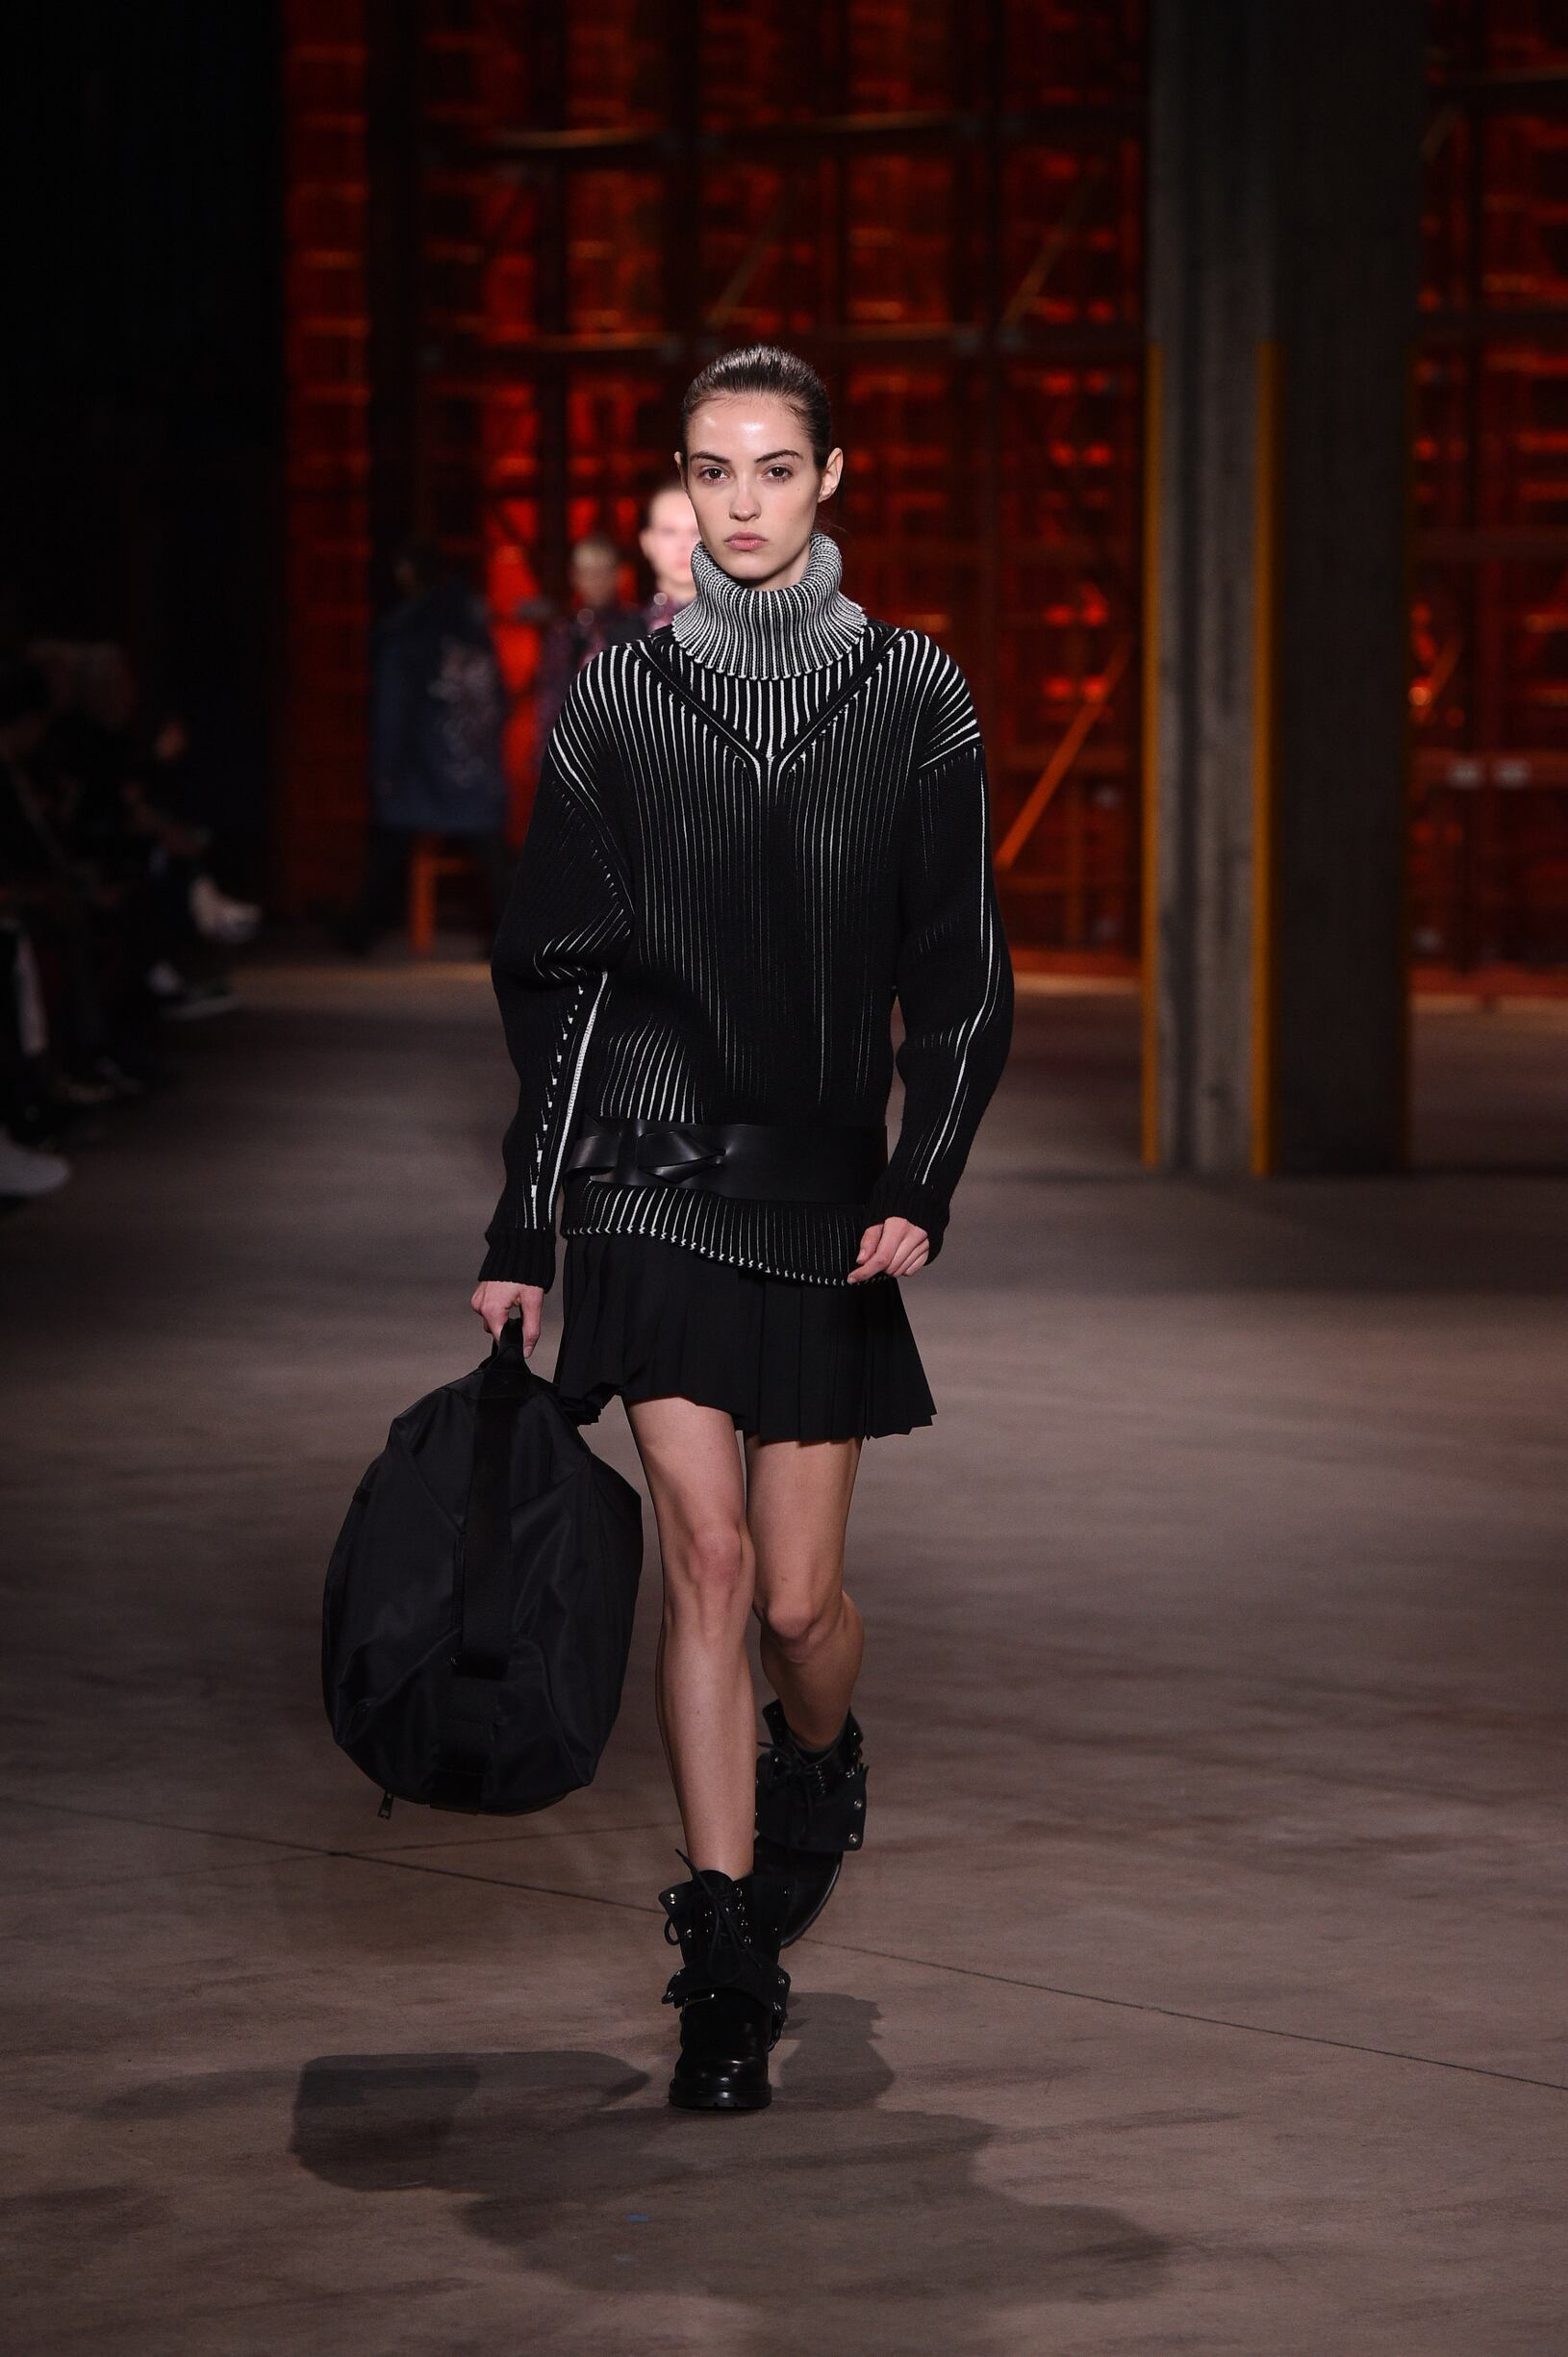 Diesel Black Gold Fall 2018 Woman Catwalk